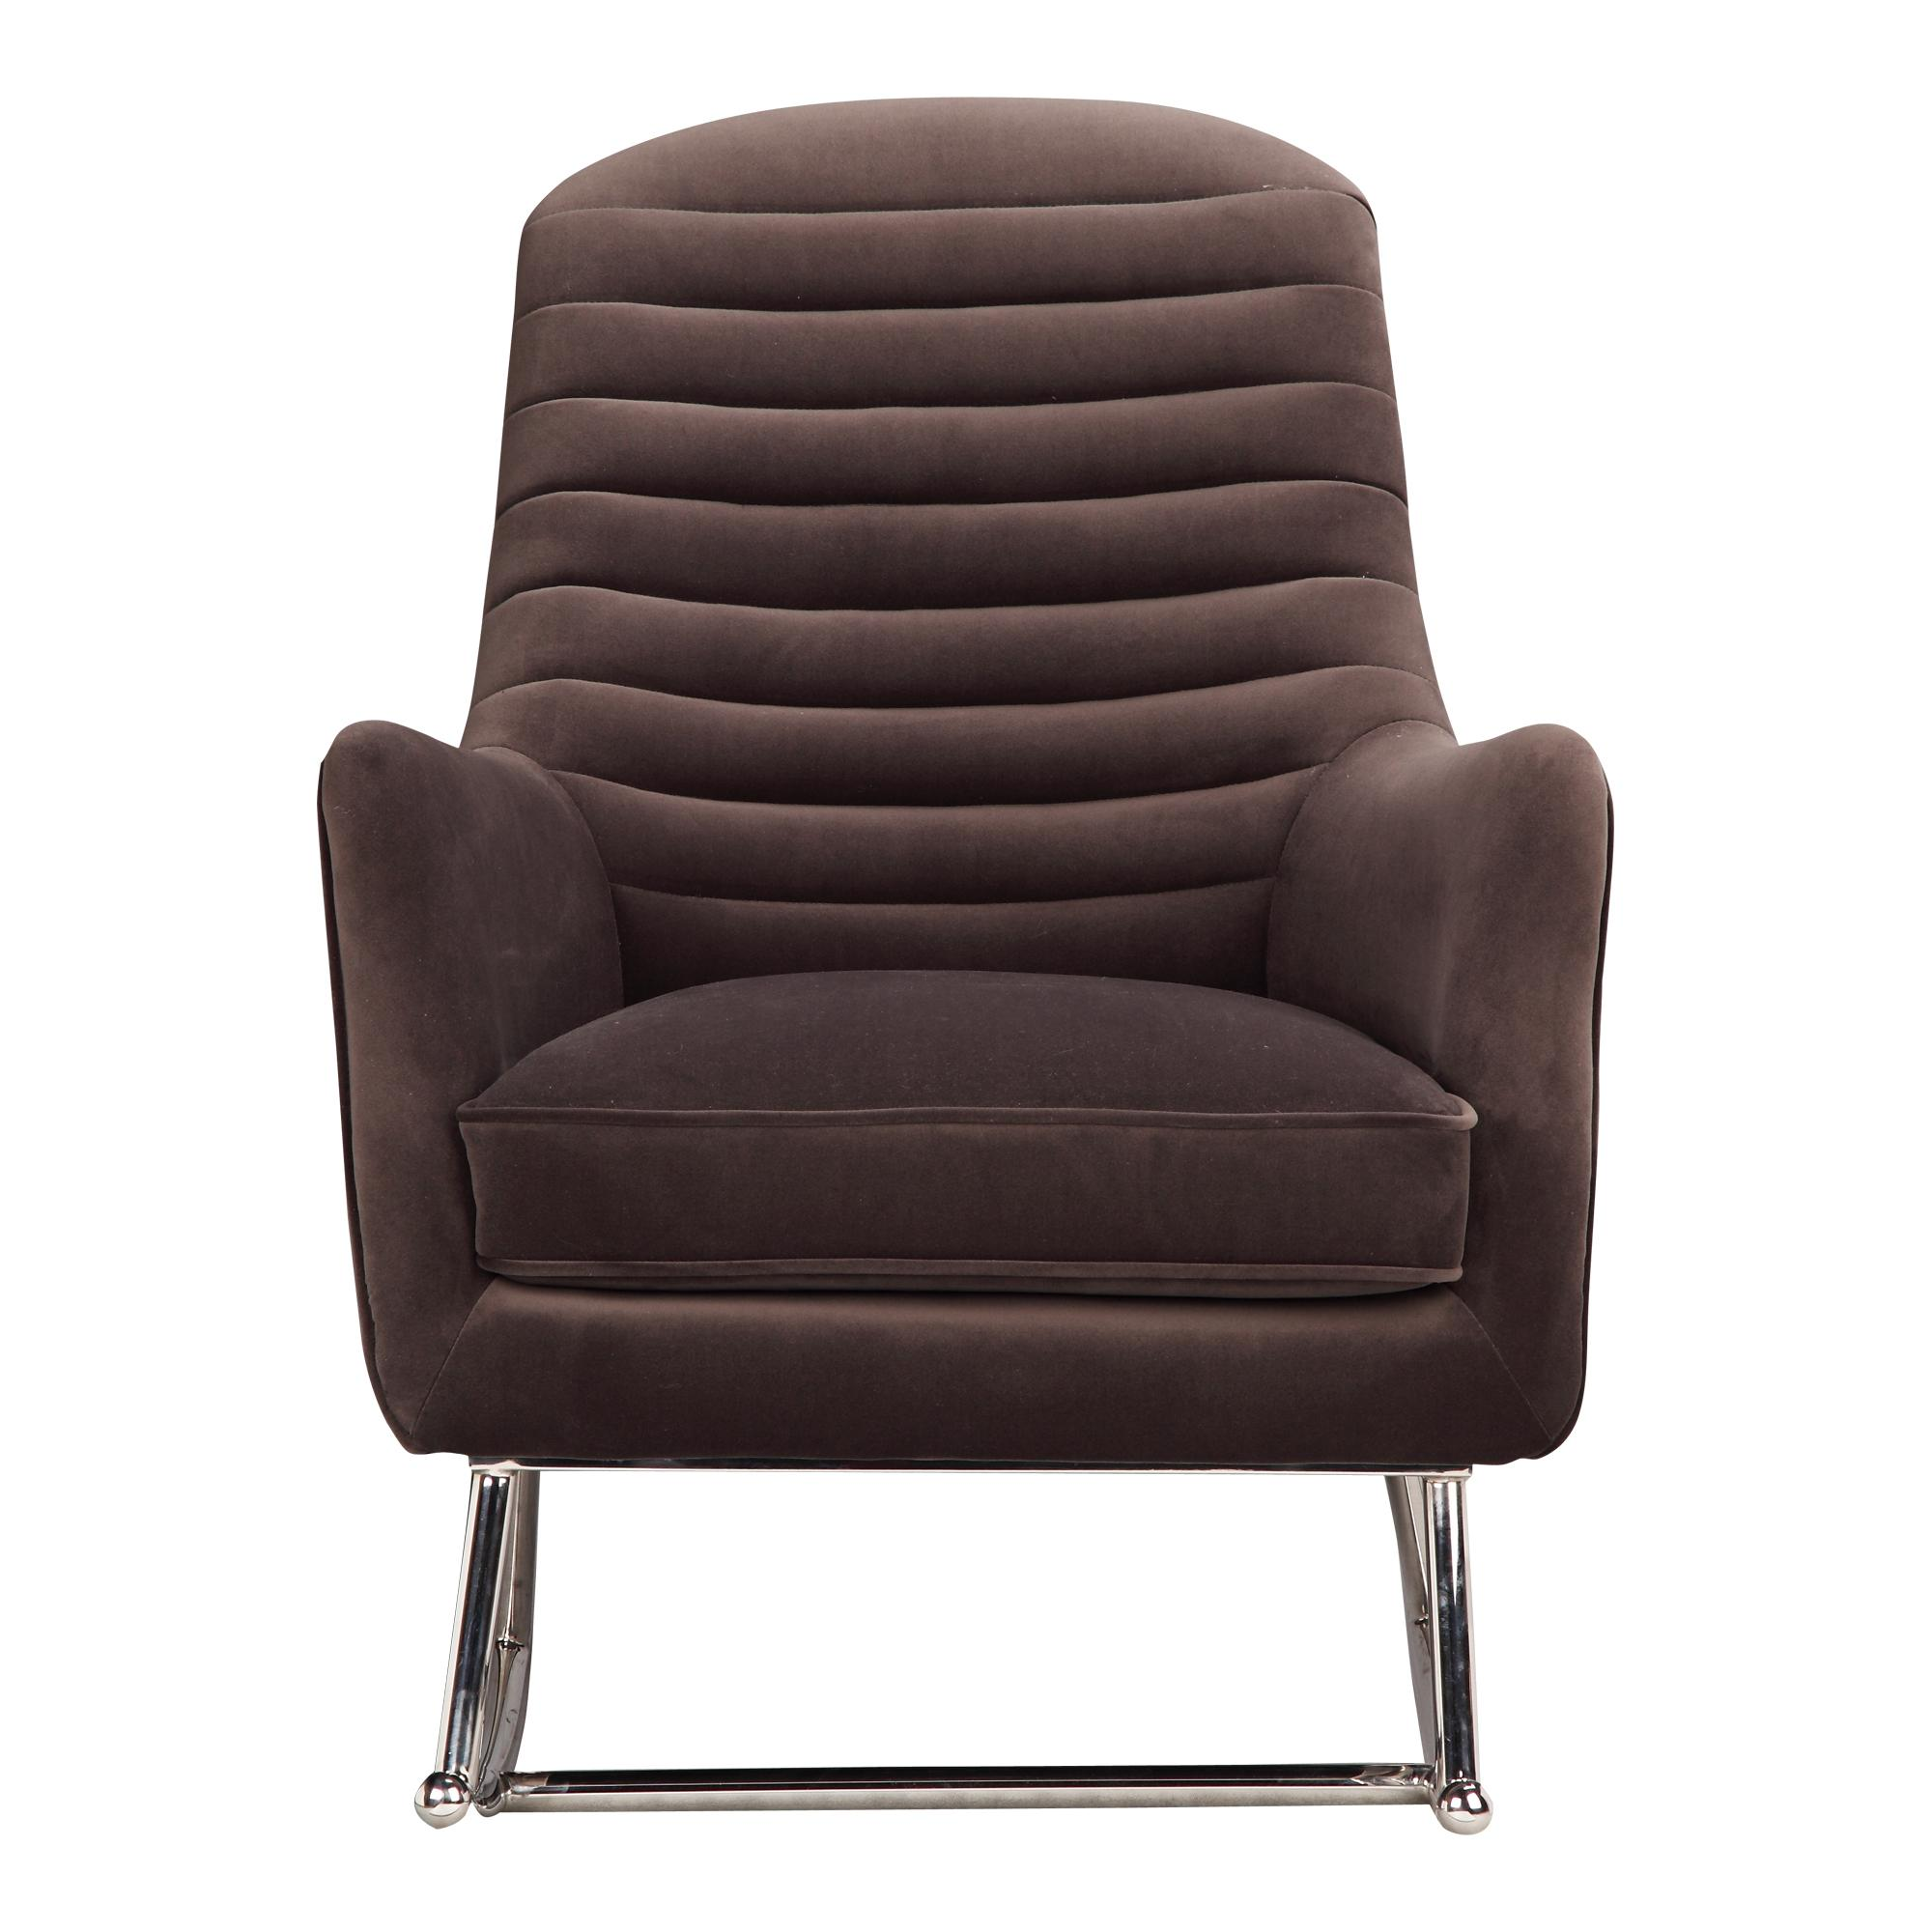 Phenomenal Moes Home Lars Grey Fabric Rocking Chair Caraccident5 Cool Chair Designs And Ideas Caraccident5Info